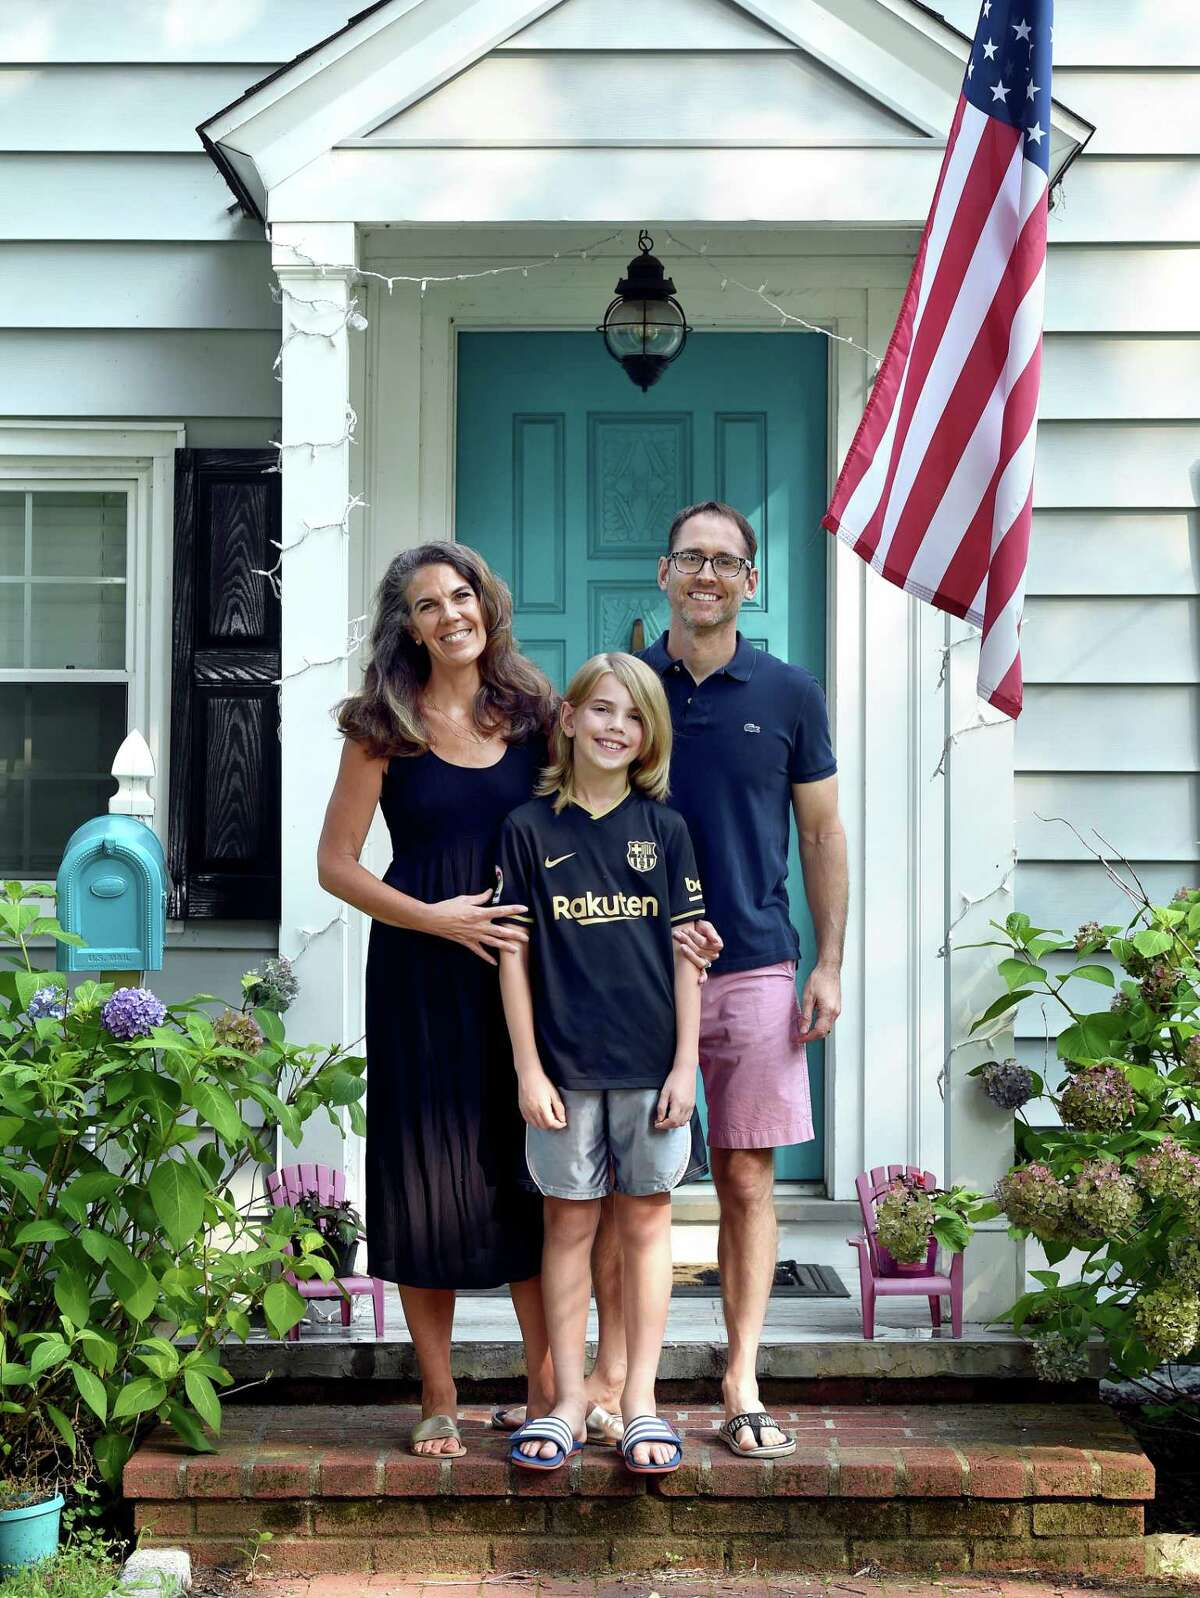 From left, Marney White, her son, Lane Mayville, and husband, Erik Mayville, photographed in front of their home in Fairfield on July 27, 2021.